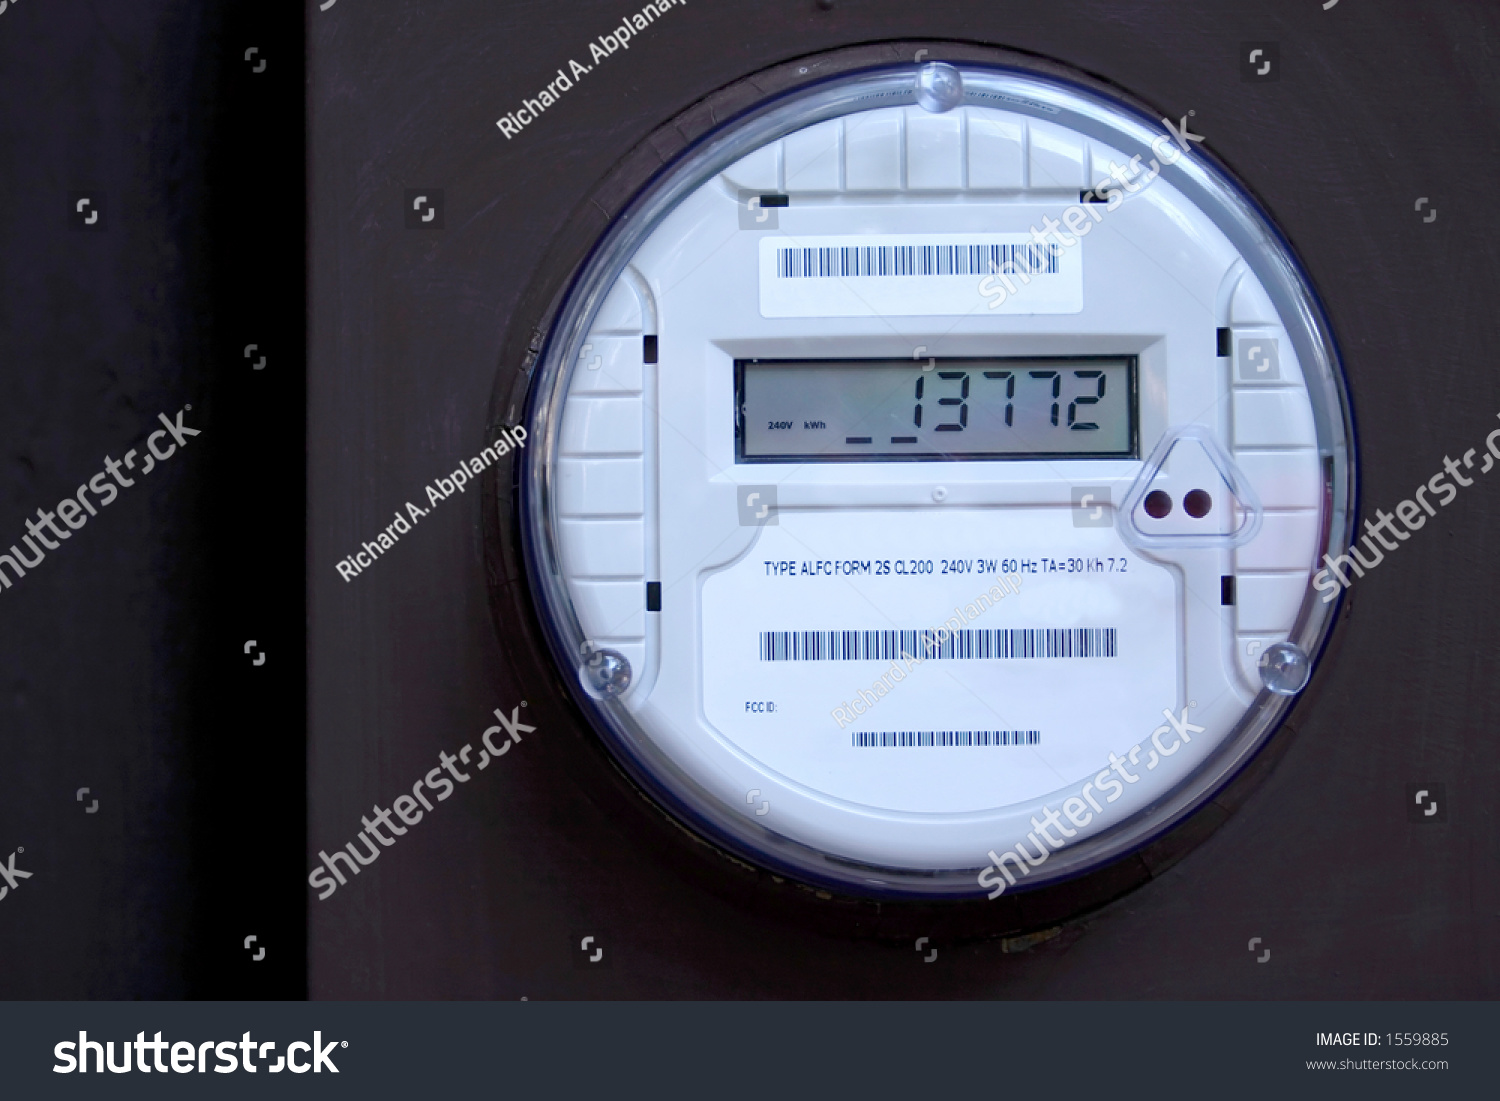 Residential Energy Meter : Digital electric residential meter stock photo